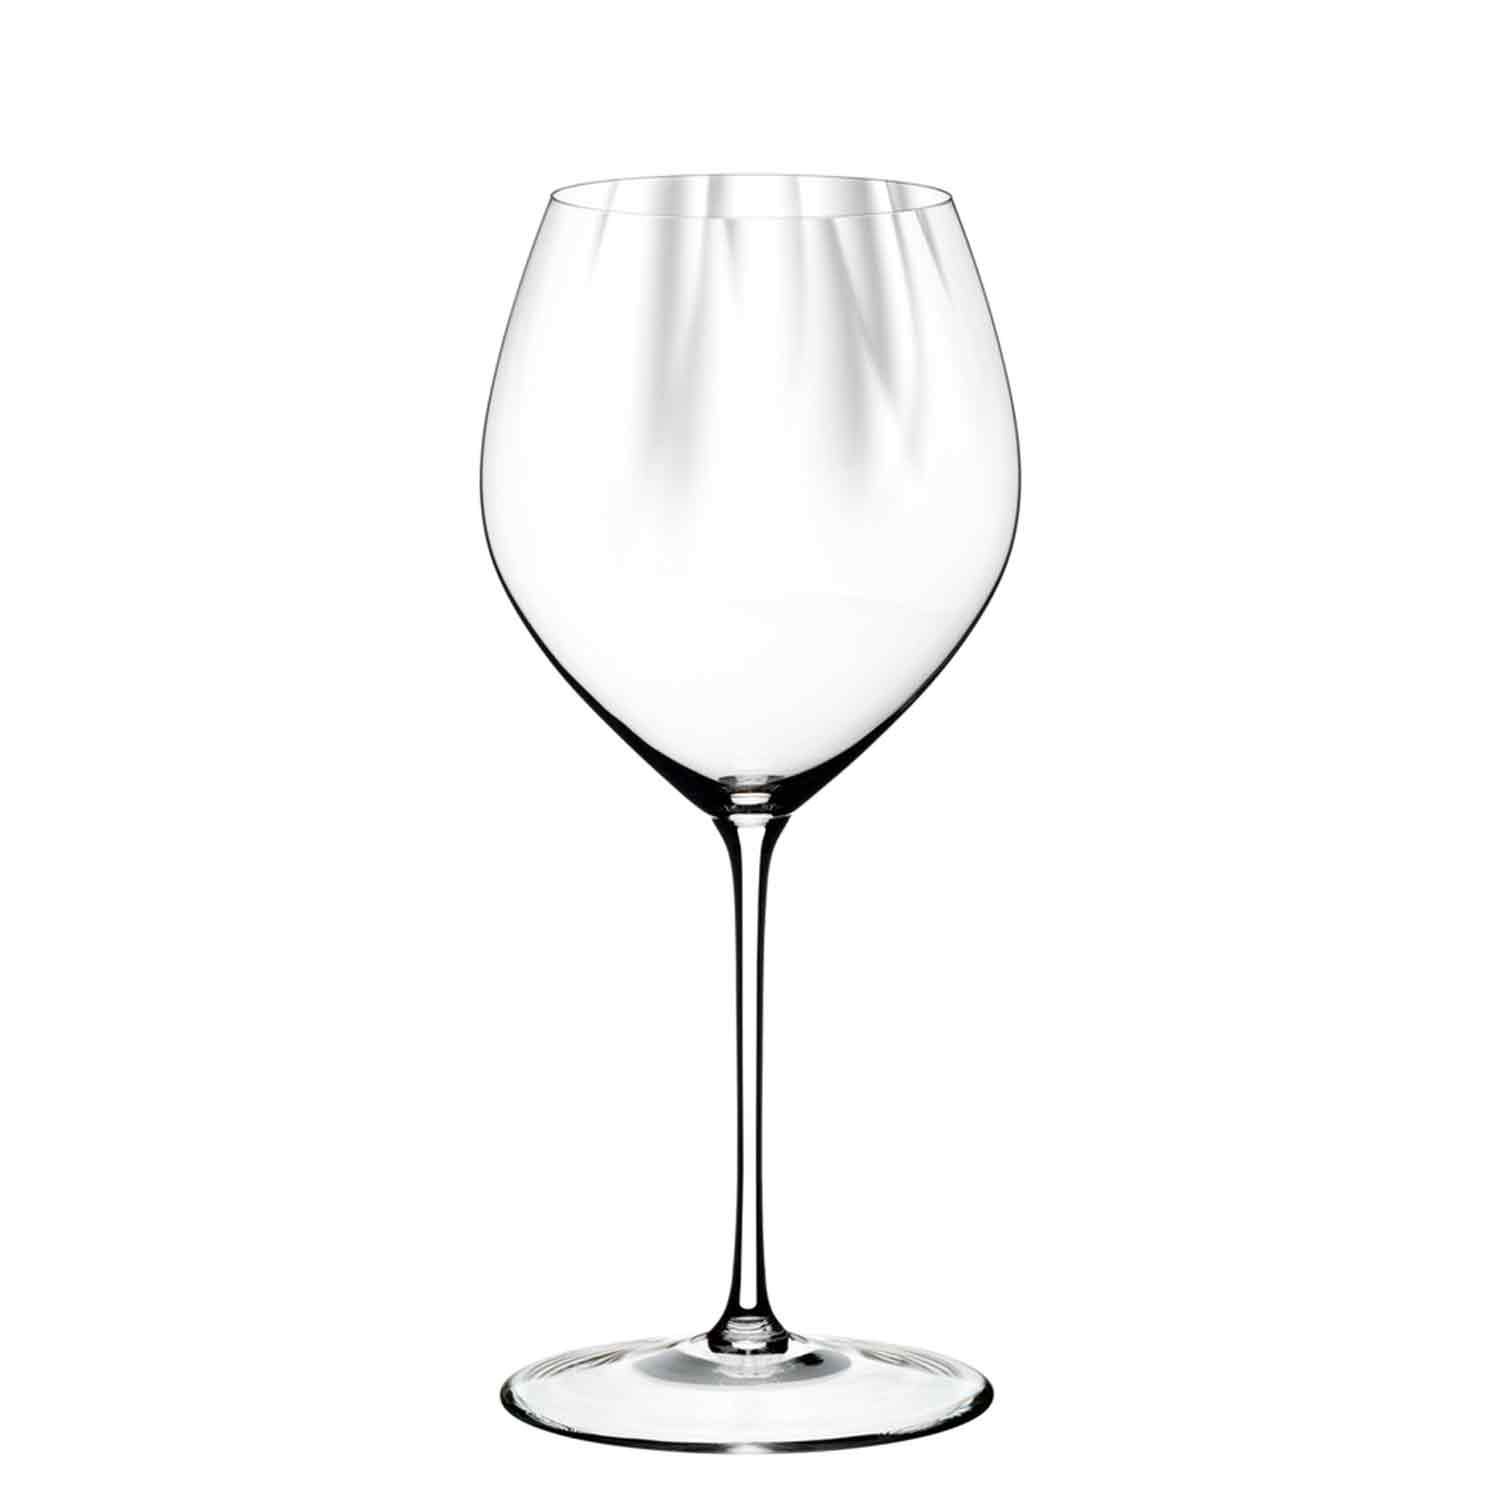 Chardonnay Wine Glass Performance Chardonnay Wine Glass 2 Pack Riedel